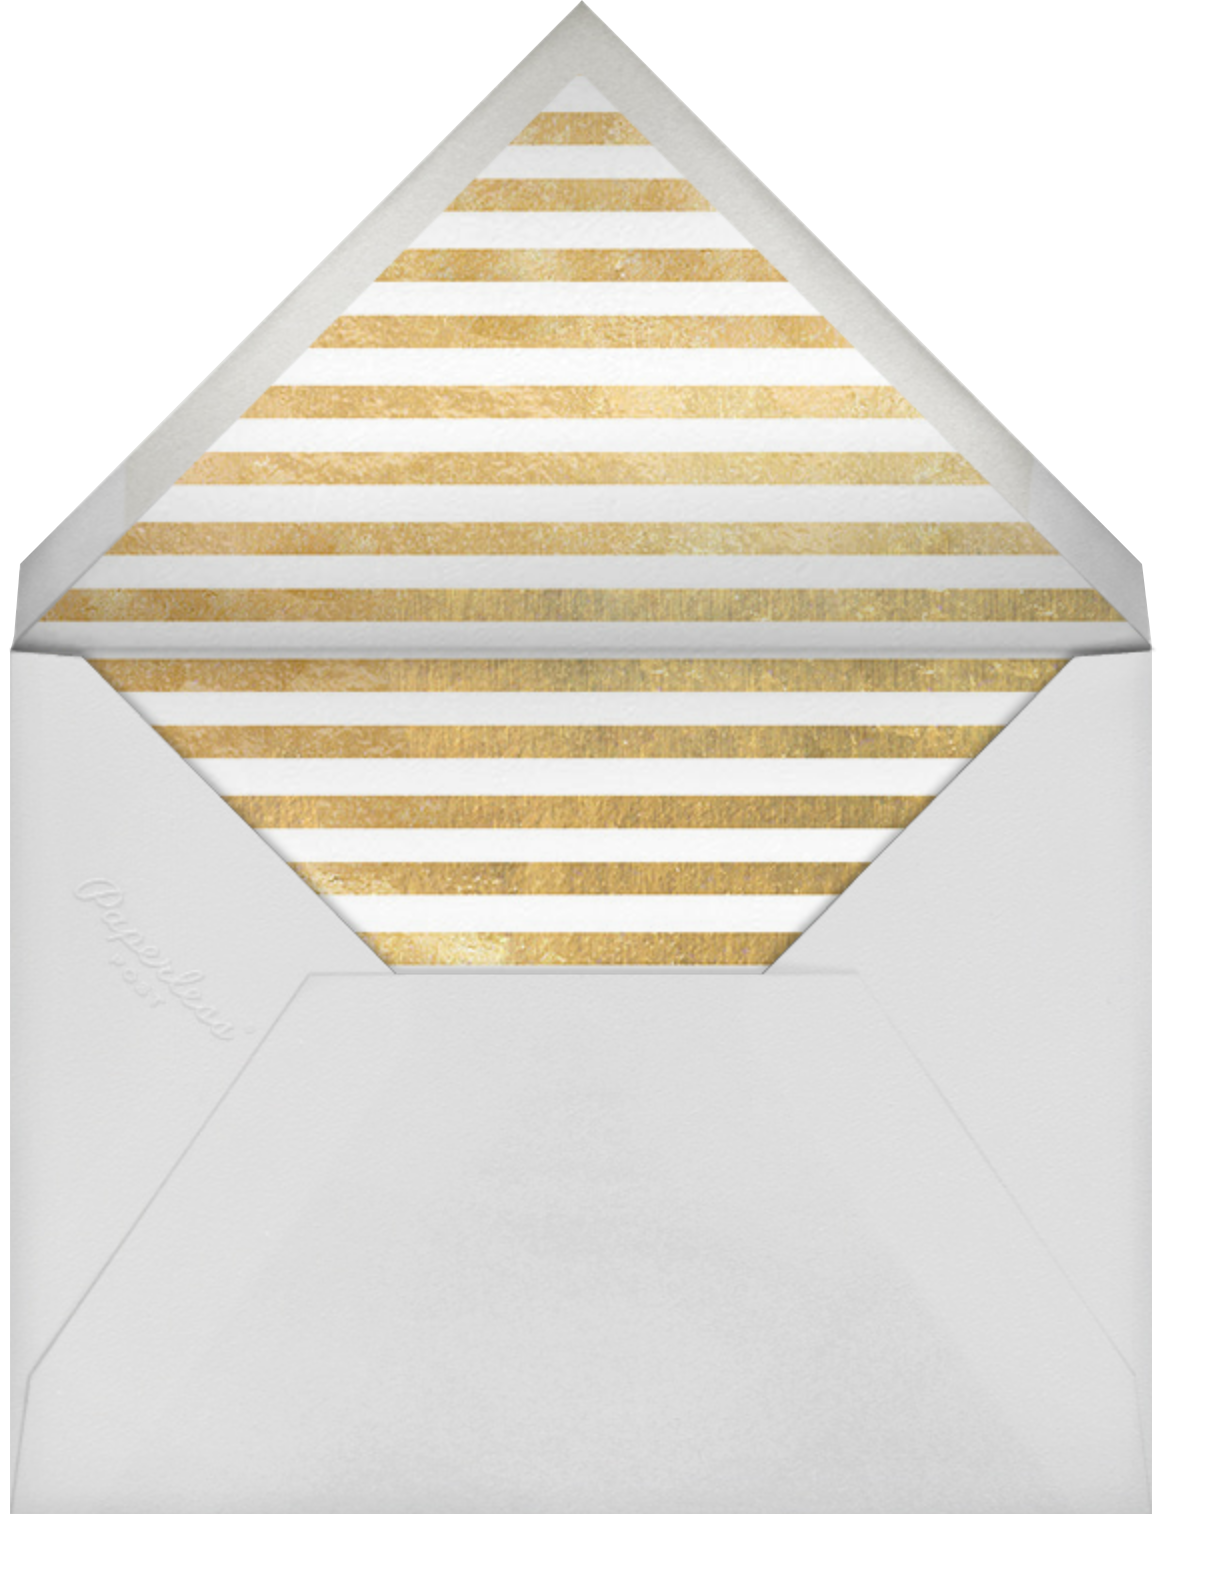 Confetti Tall (Double-Sided Photo) - Gold - kate spade new york - All - envelope back